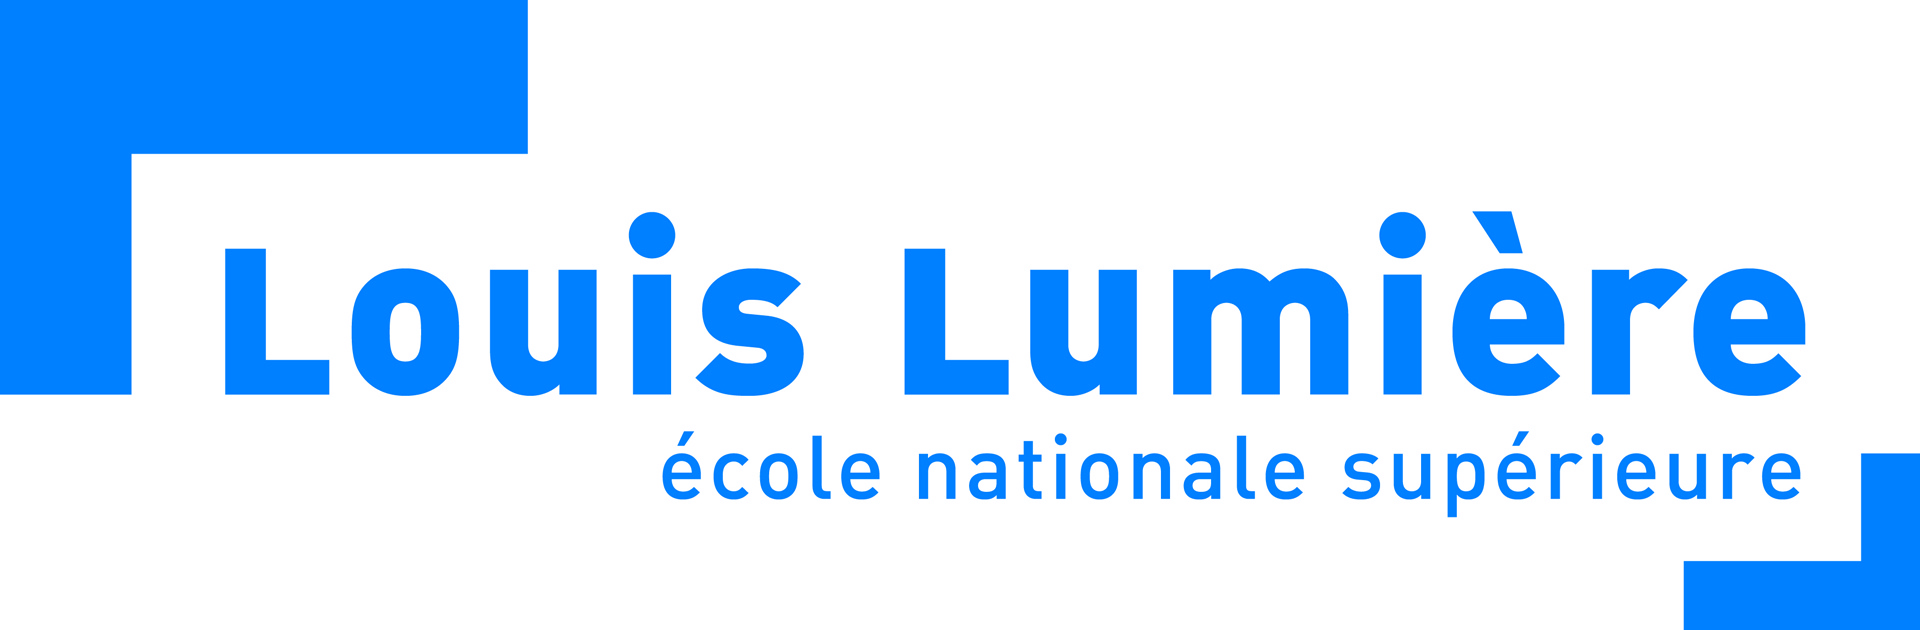 ECOLE NATIONALE SUPERIEURE LOUIS LUMIERE